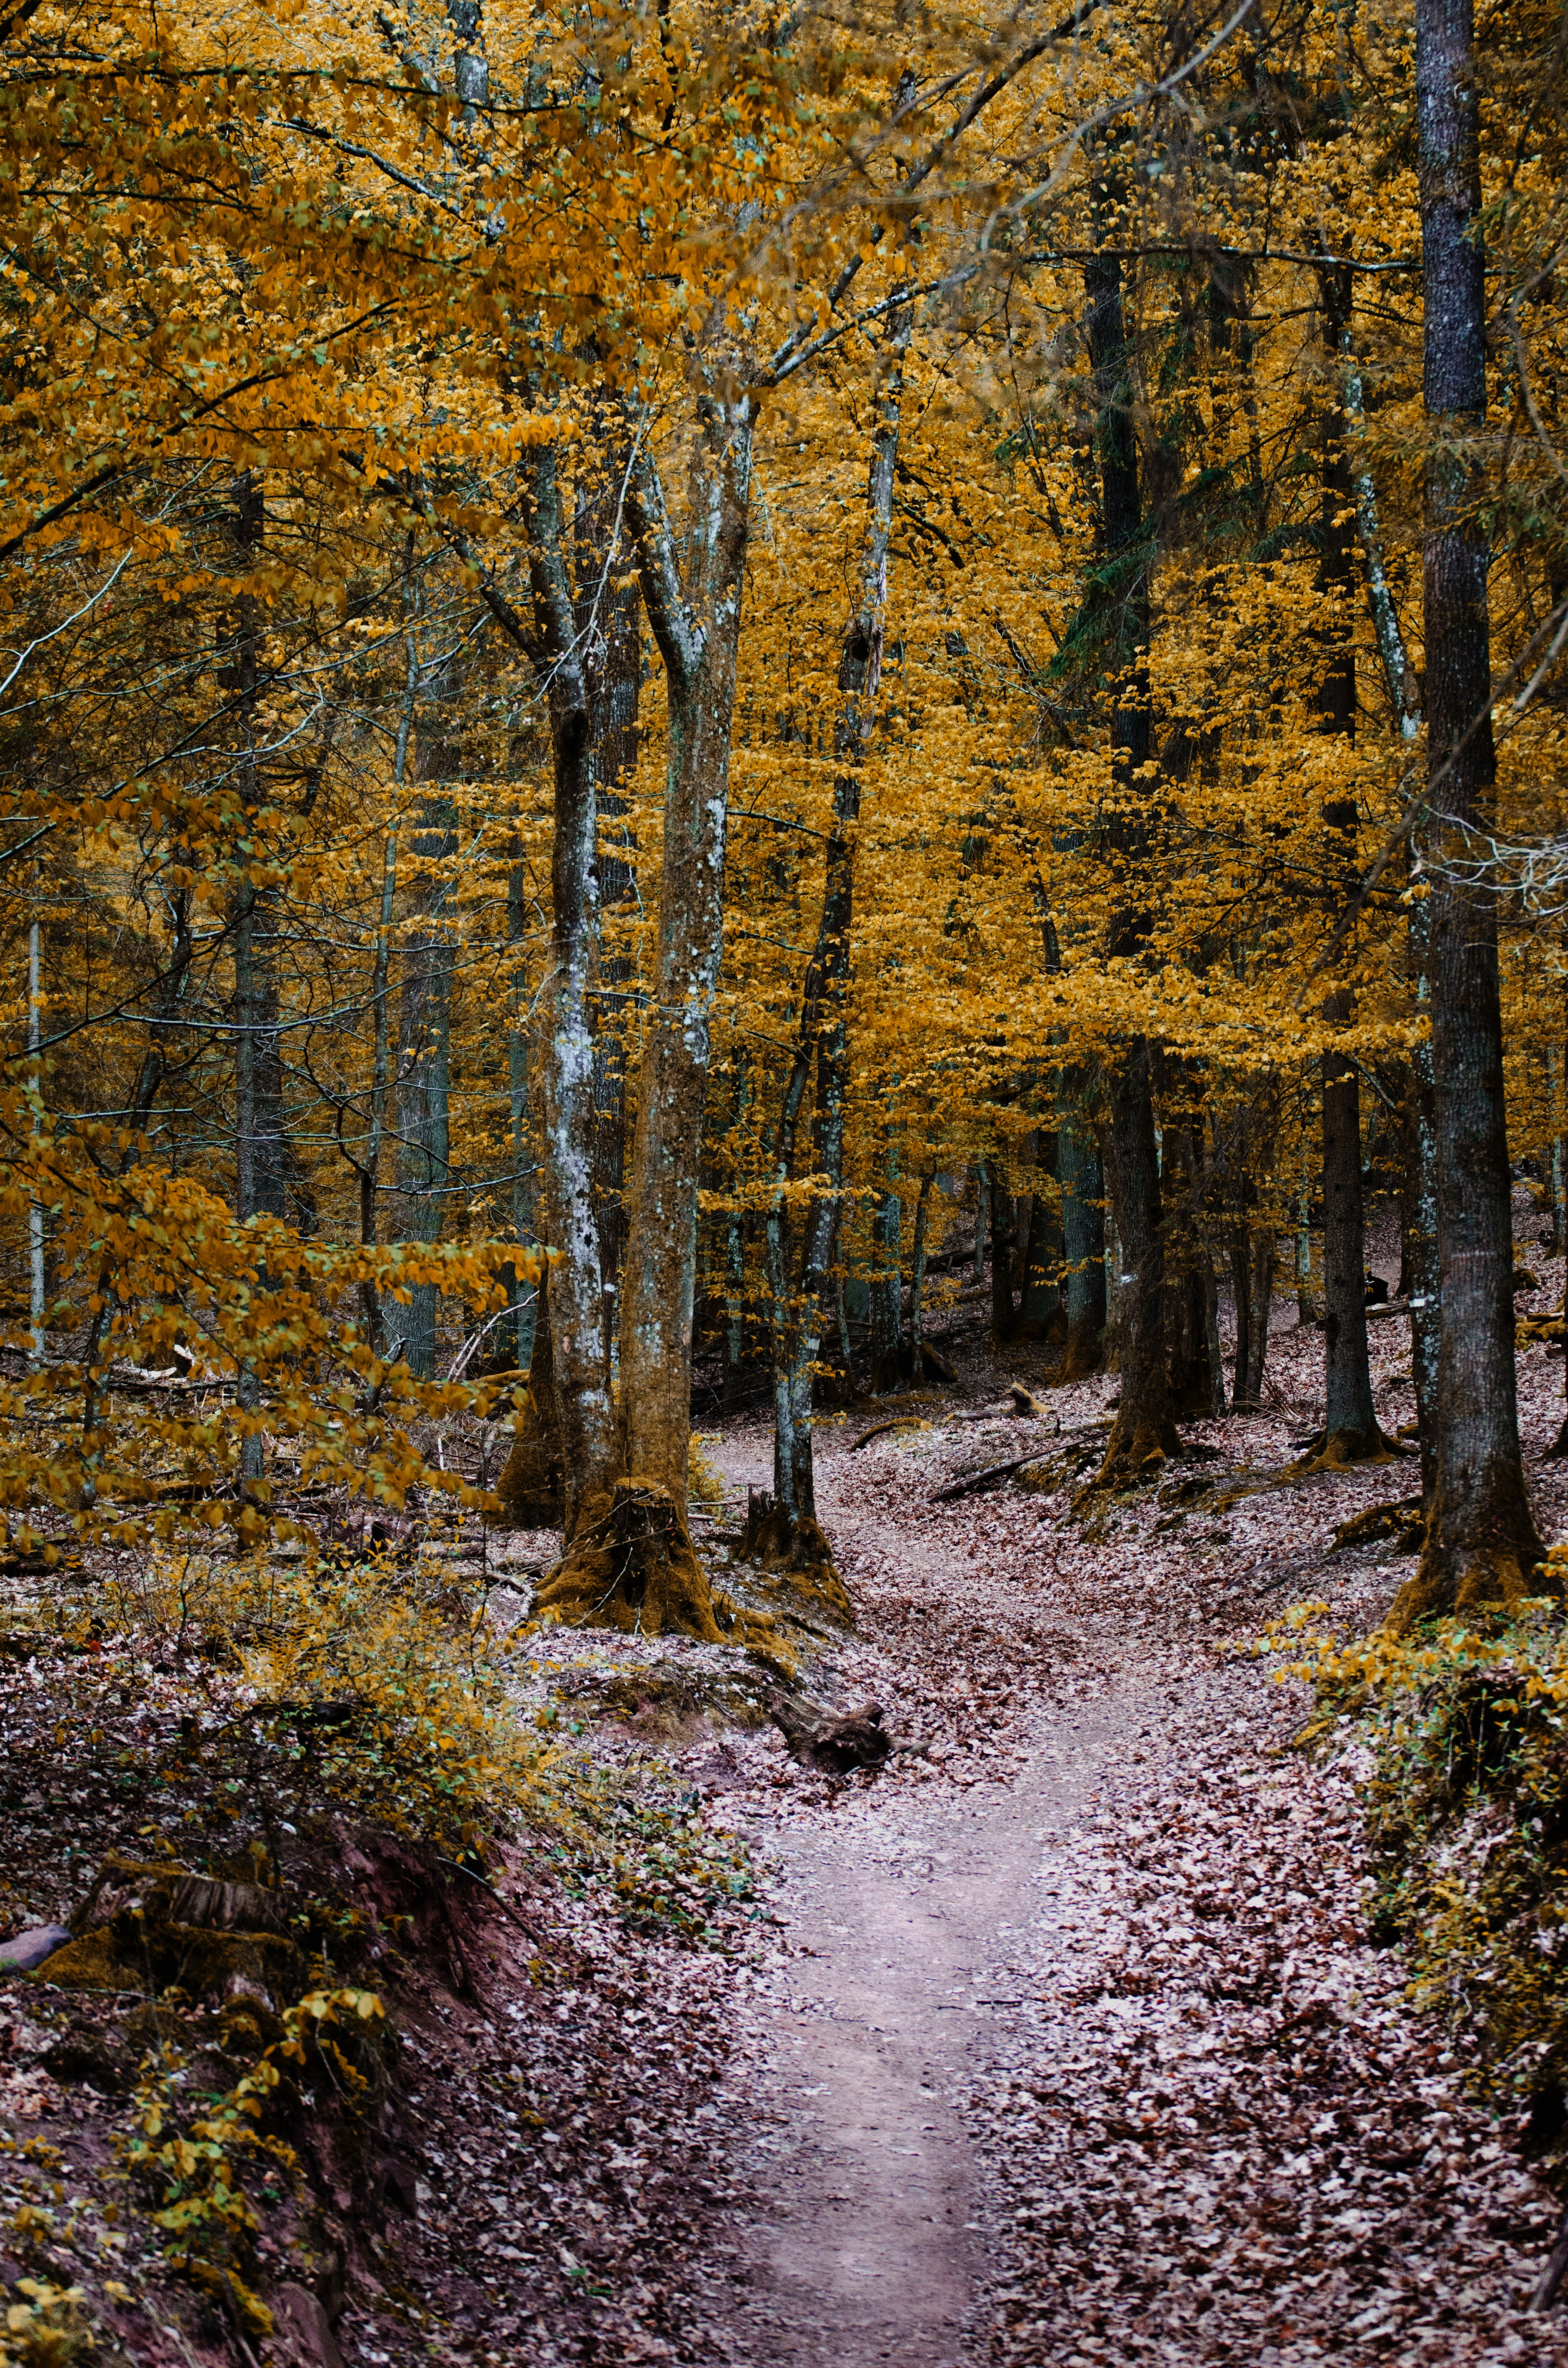 Green Leaved Trees, Branches, Pathway, Trees, Tree trunks, HQ Photo